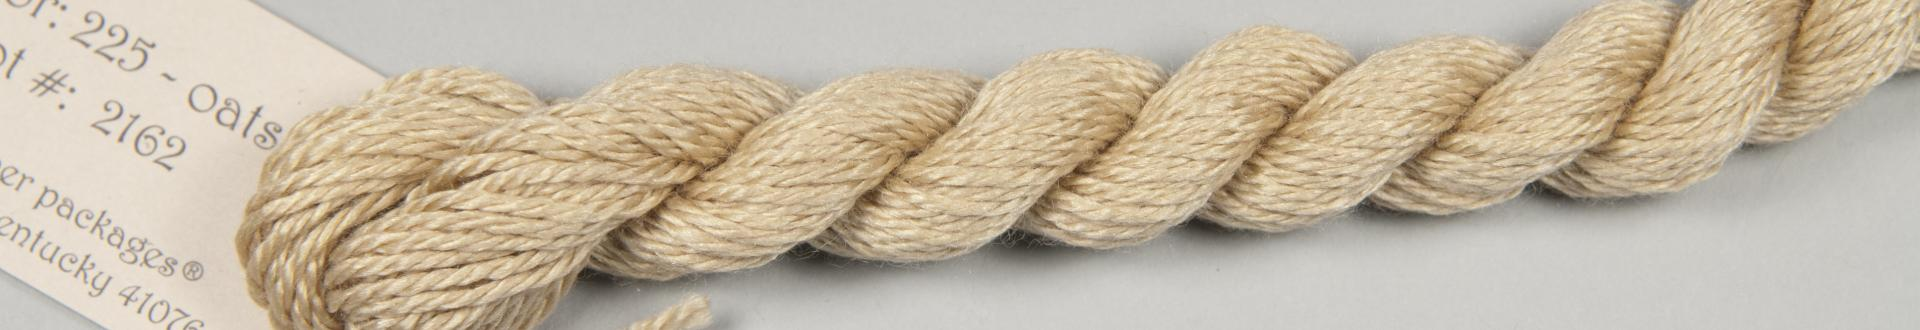 Brown Paper Packages Silk And Ivory Yarns And Skeins